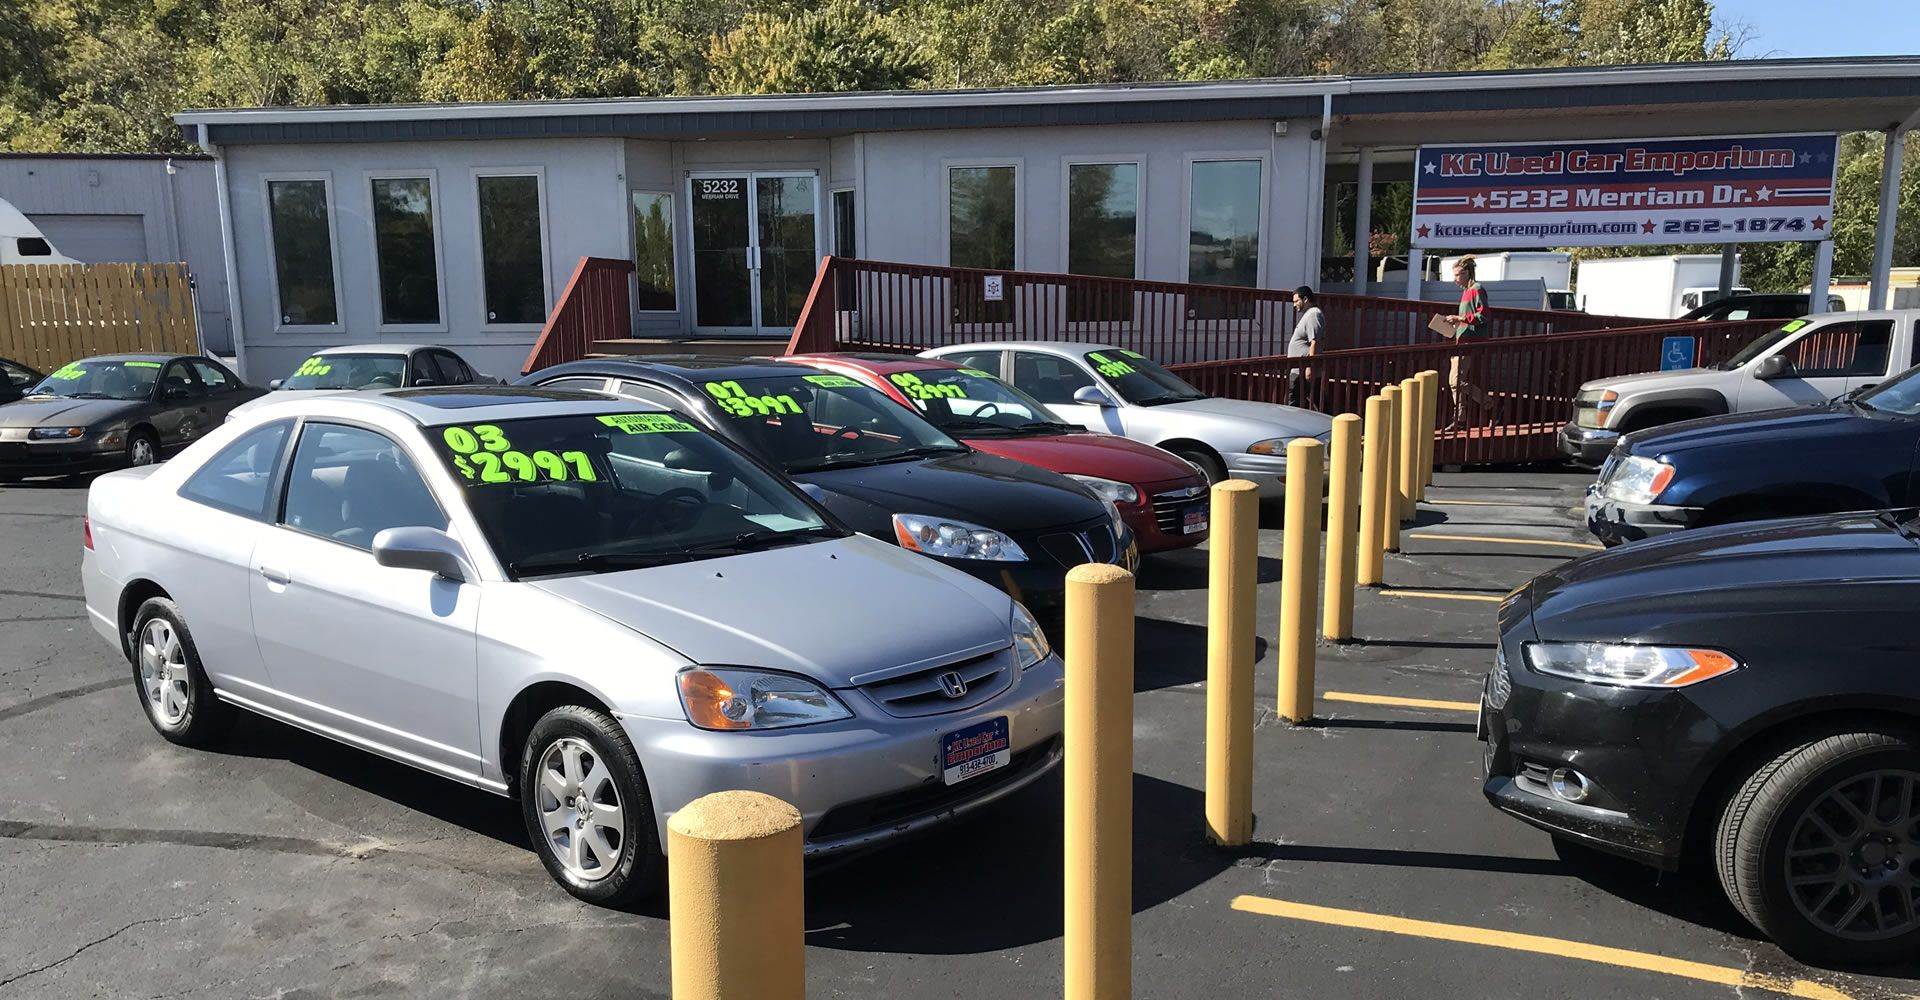 Used Cars for Sell Near Me Unique New Used Cars for Sale Near Me Delightful to Be Able to My Personal